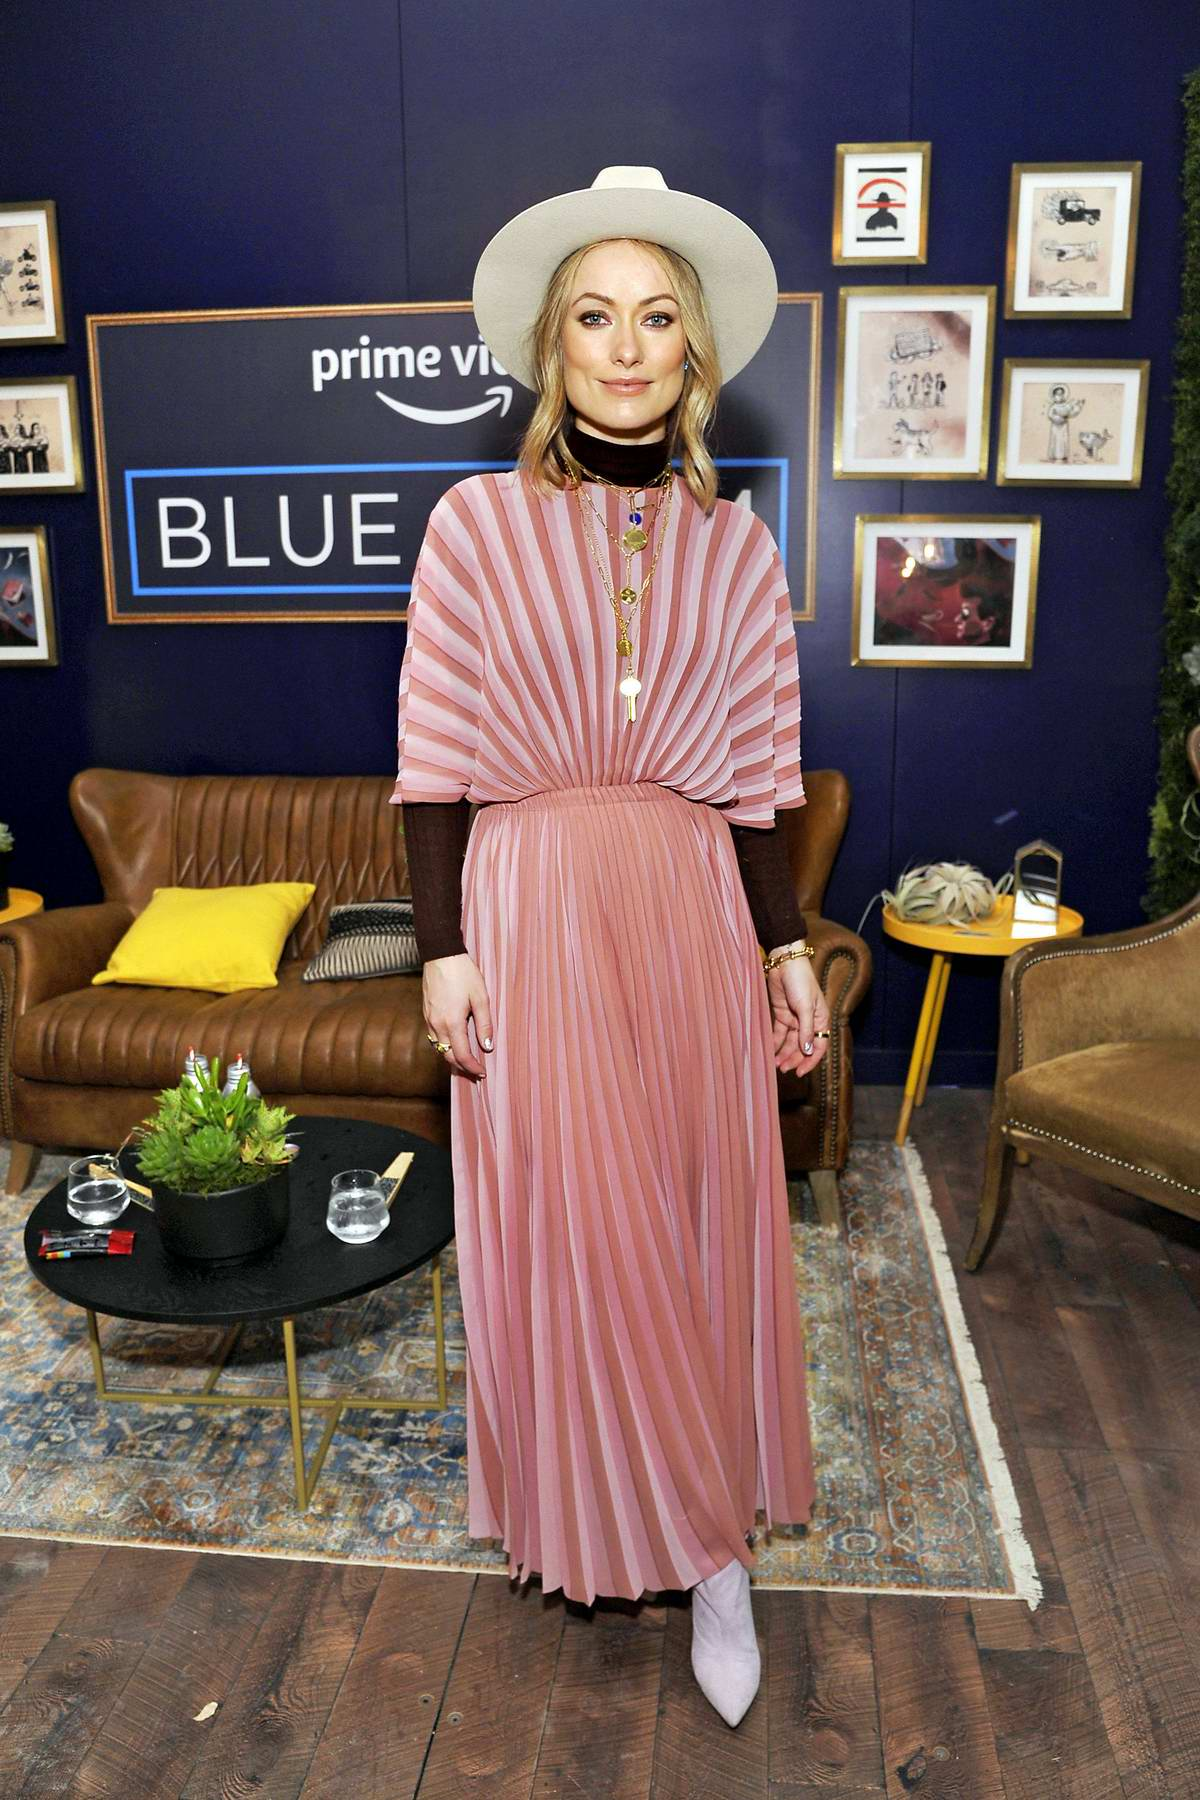 Olivia Wilde attends the Prime Video Blue Room during 2019 SXSW Festival in Austin, Texas